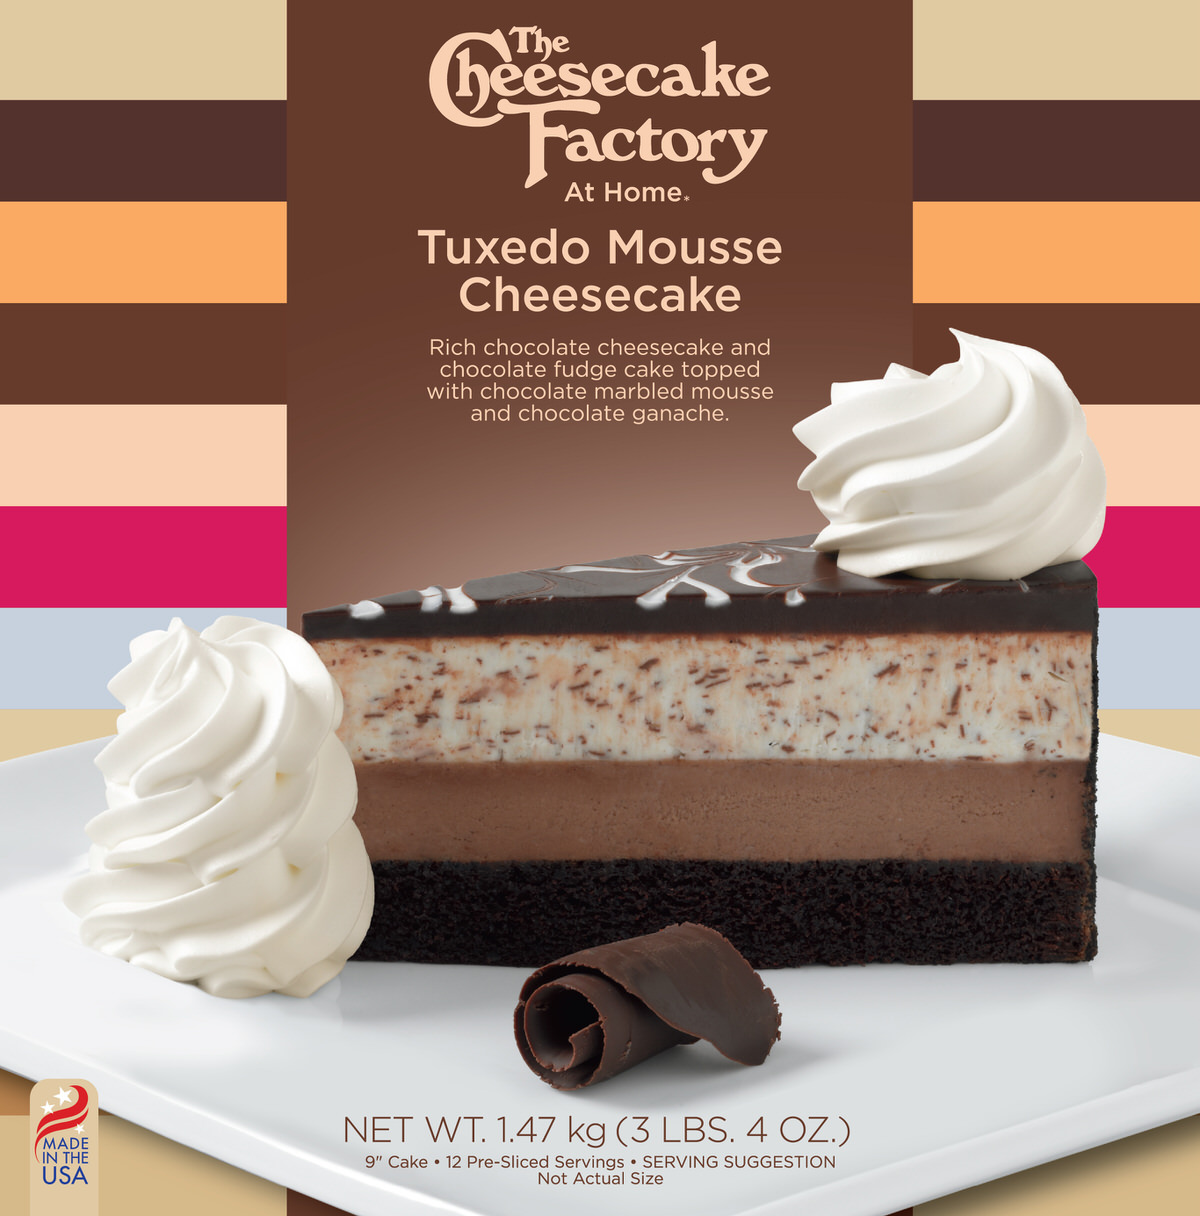 9 inch Tuxedo Mousse Cheesecake